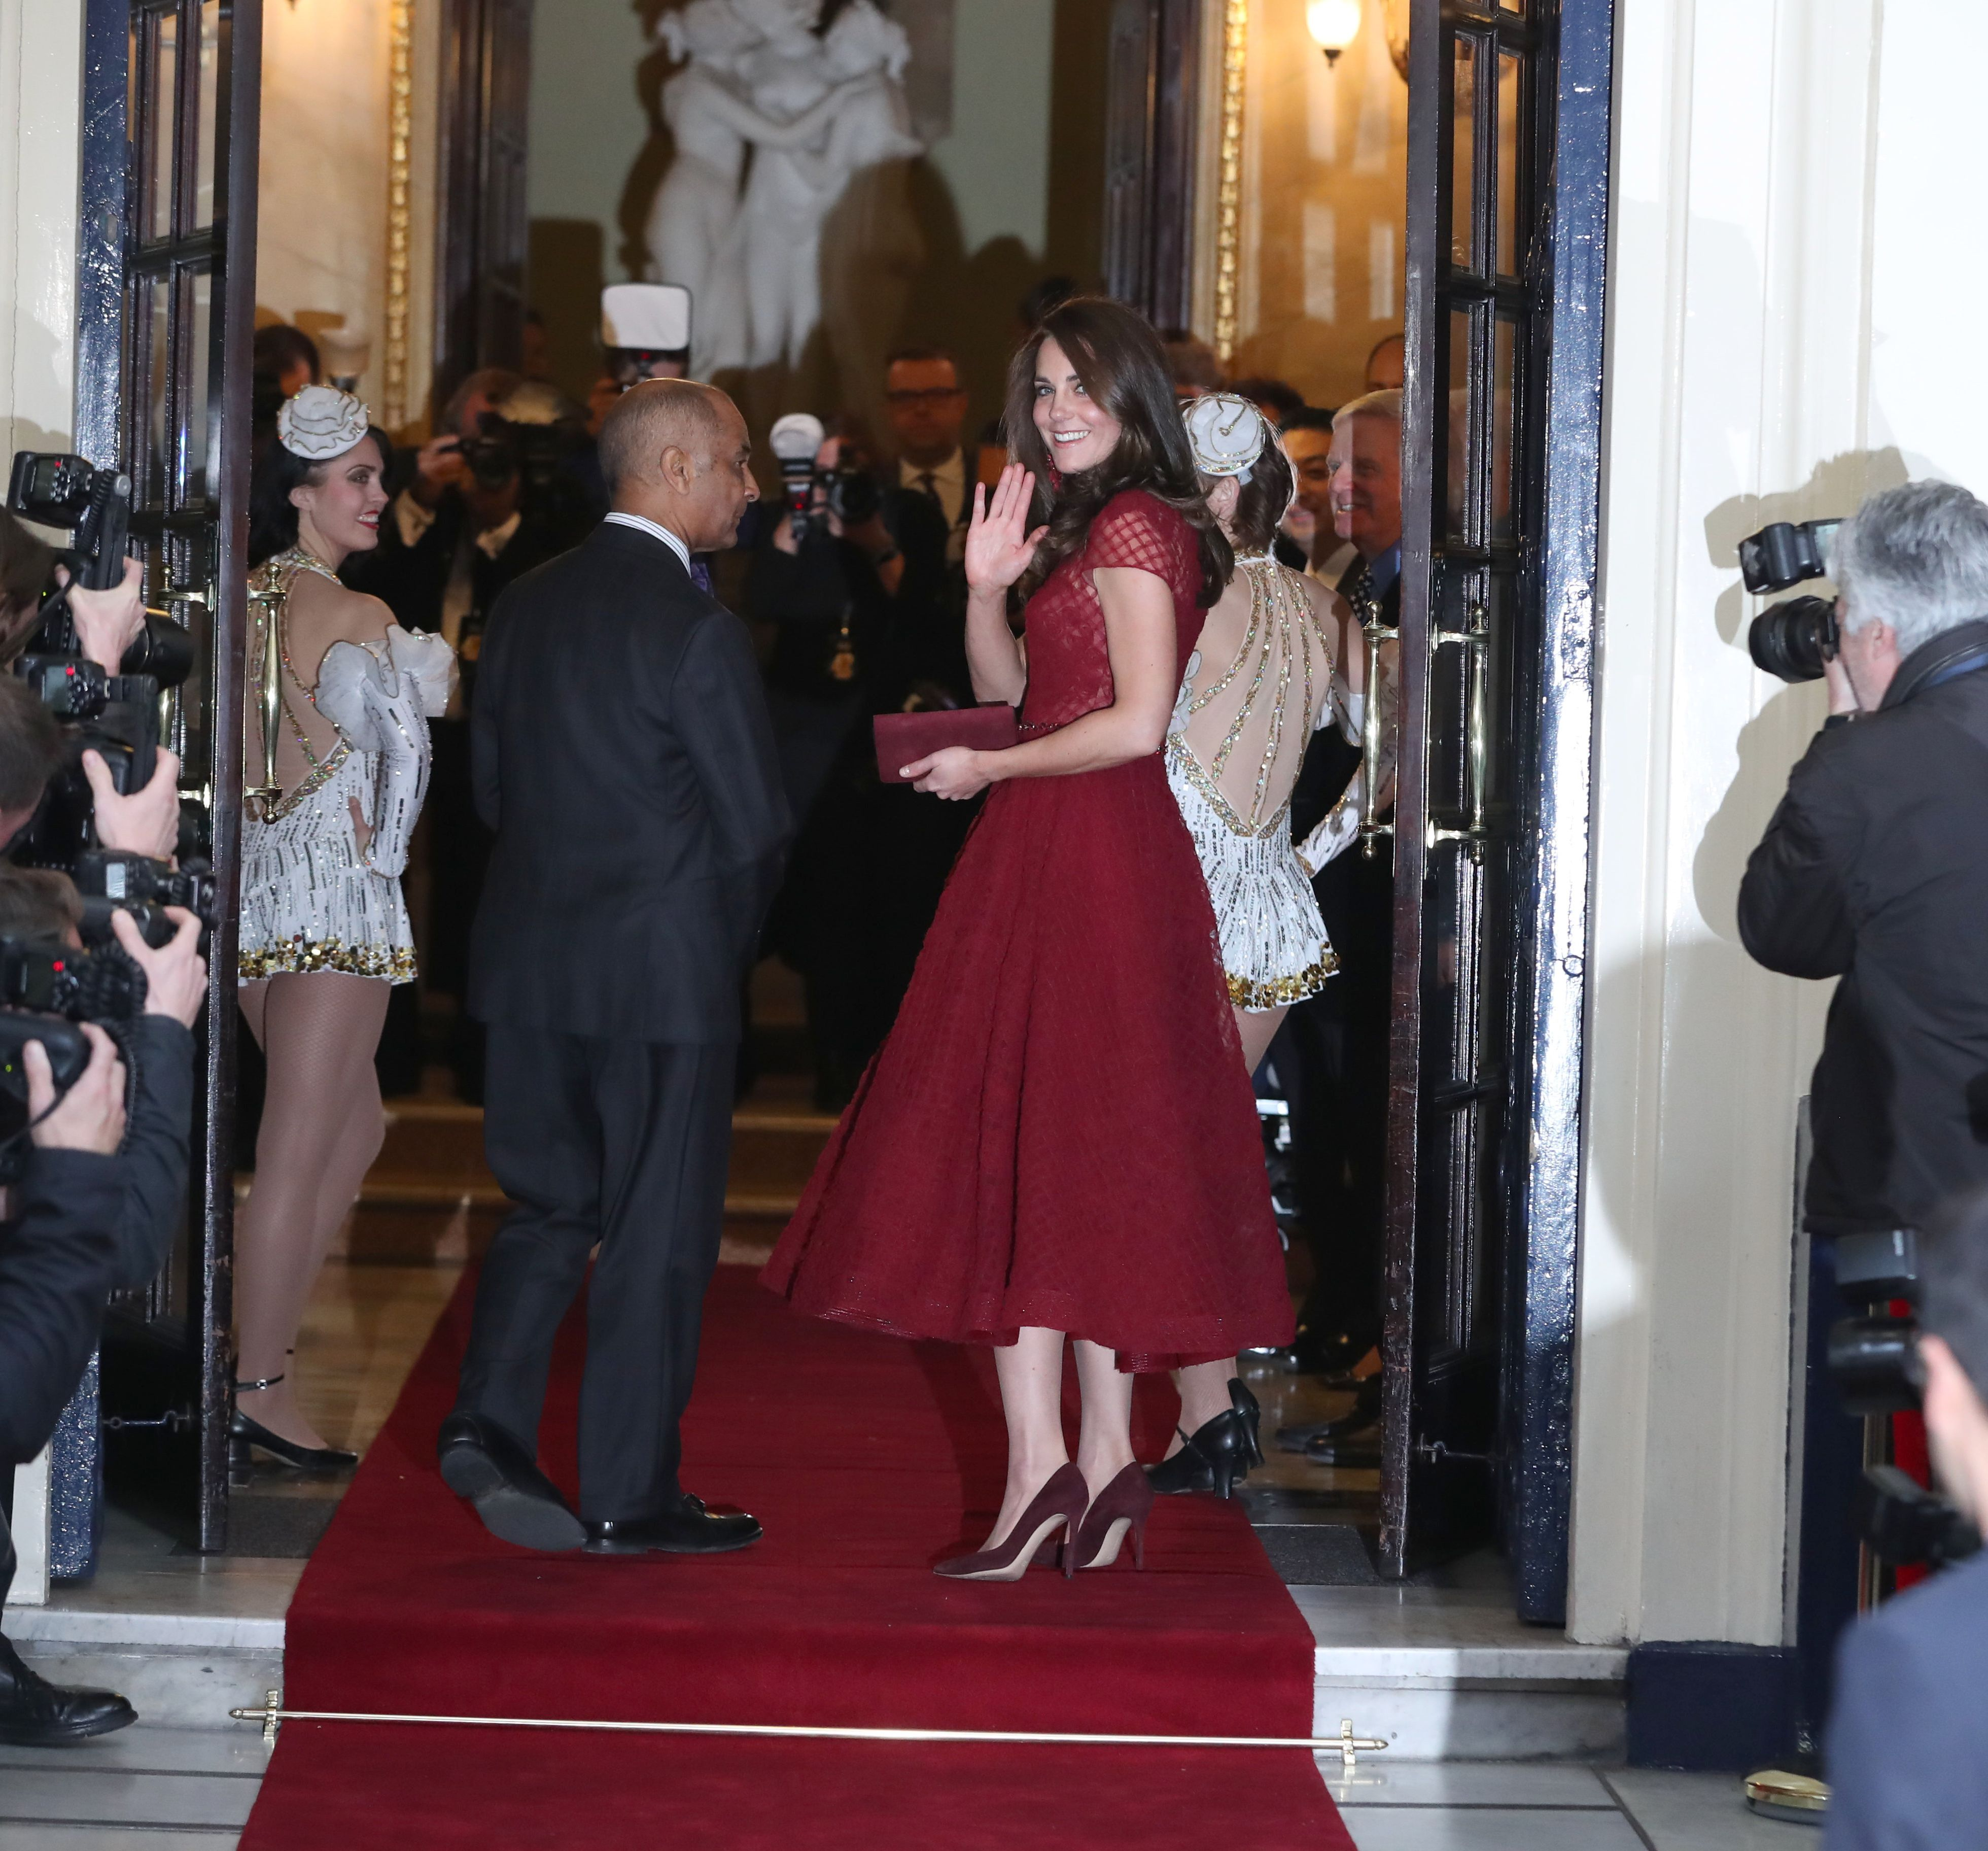 The Duchess of Cambridge in Marchesa Notte